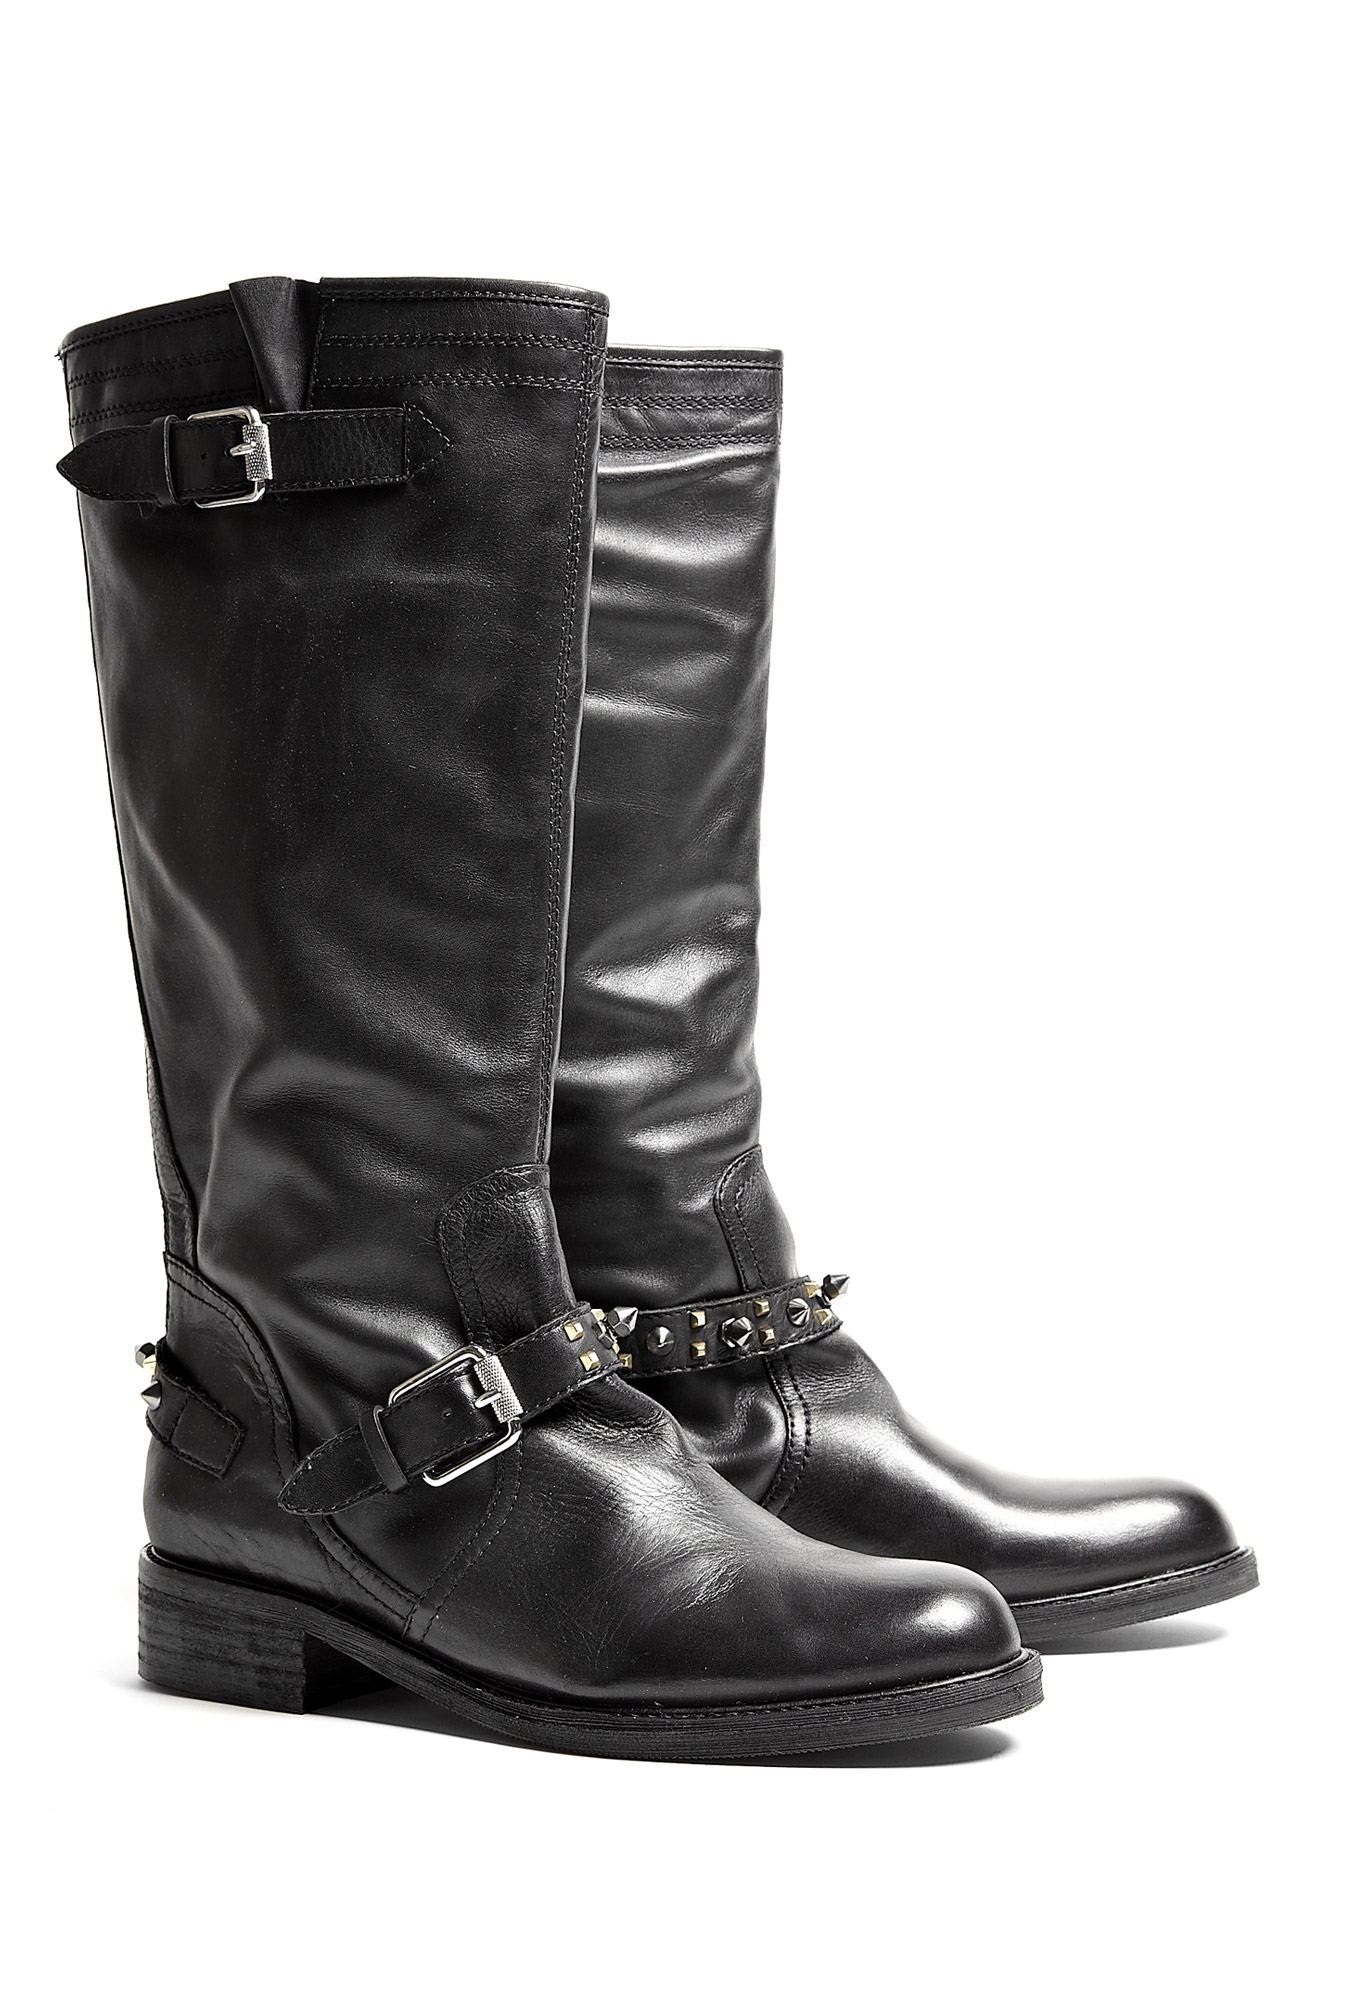 Motorcycle boots come in a variety of styles depending on the terrain, surface area, and conditions in which you typically ride your bike. Cruisers - This is the classic black motorcycle boot. Typically constructed of thick leather with a harness over the instep, this type of boot is designed with safety and crash protection in mind.